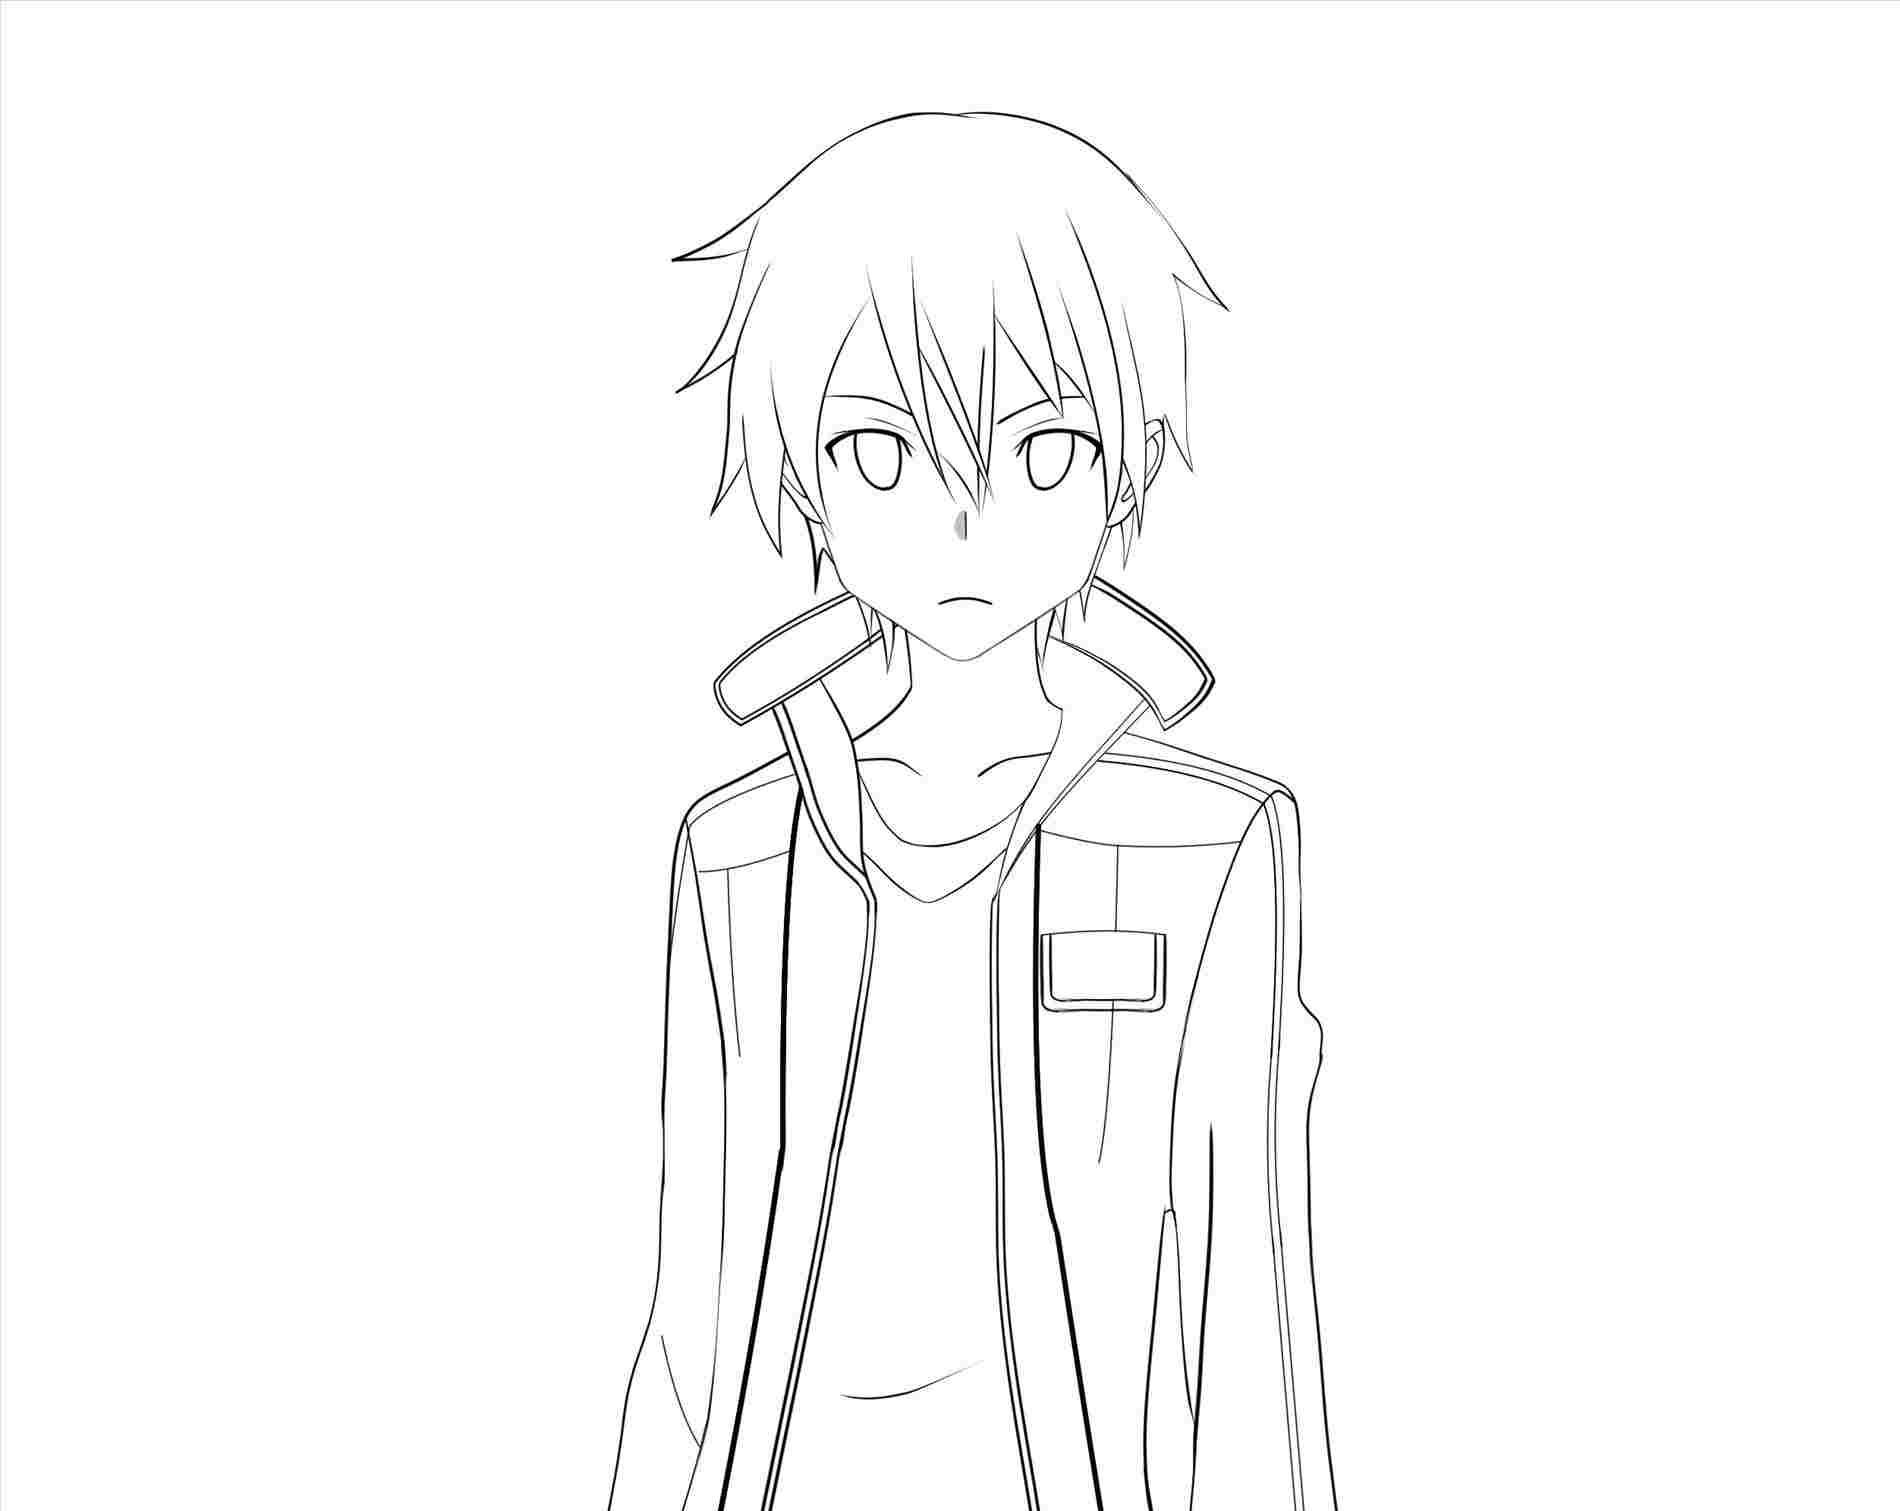 20 Anime Sketch Body Boy Anime Drawings Anime Sketch Anime Character Drawing